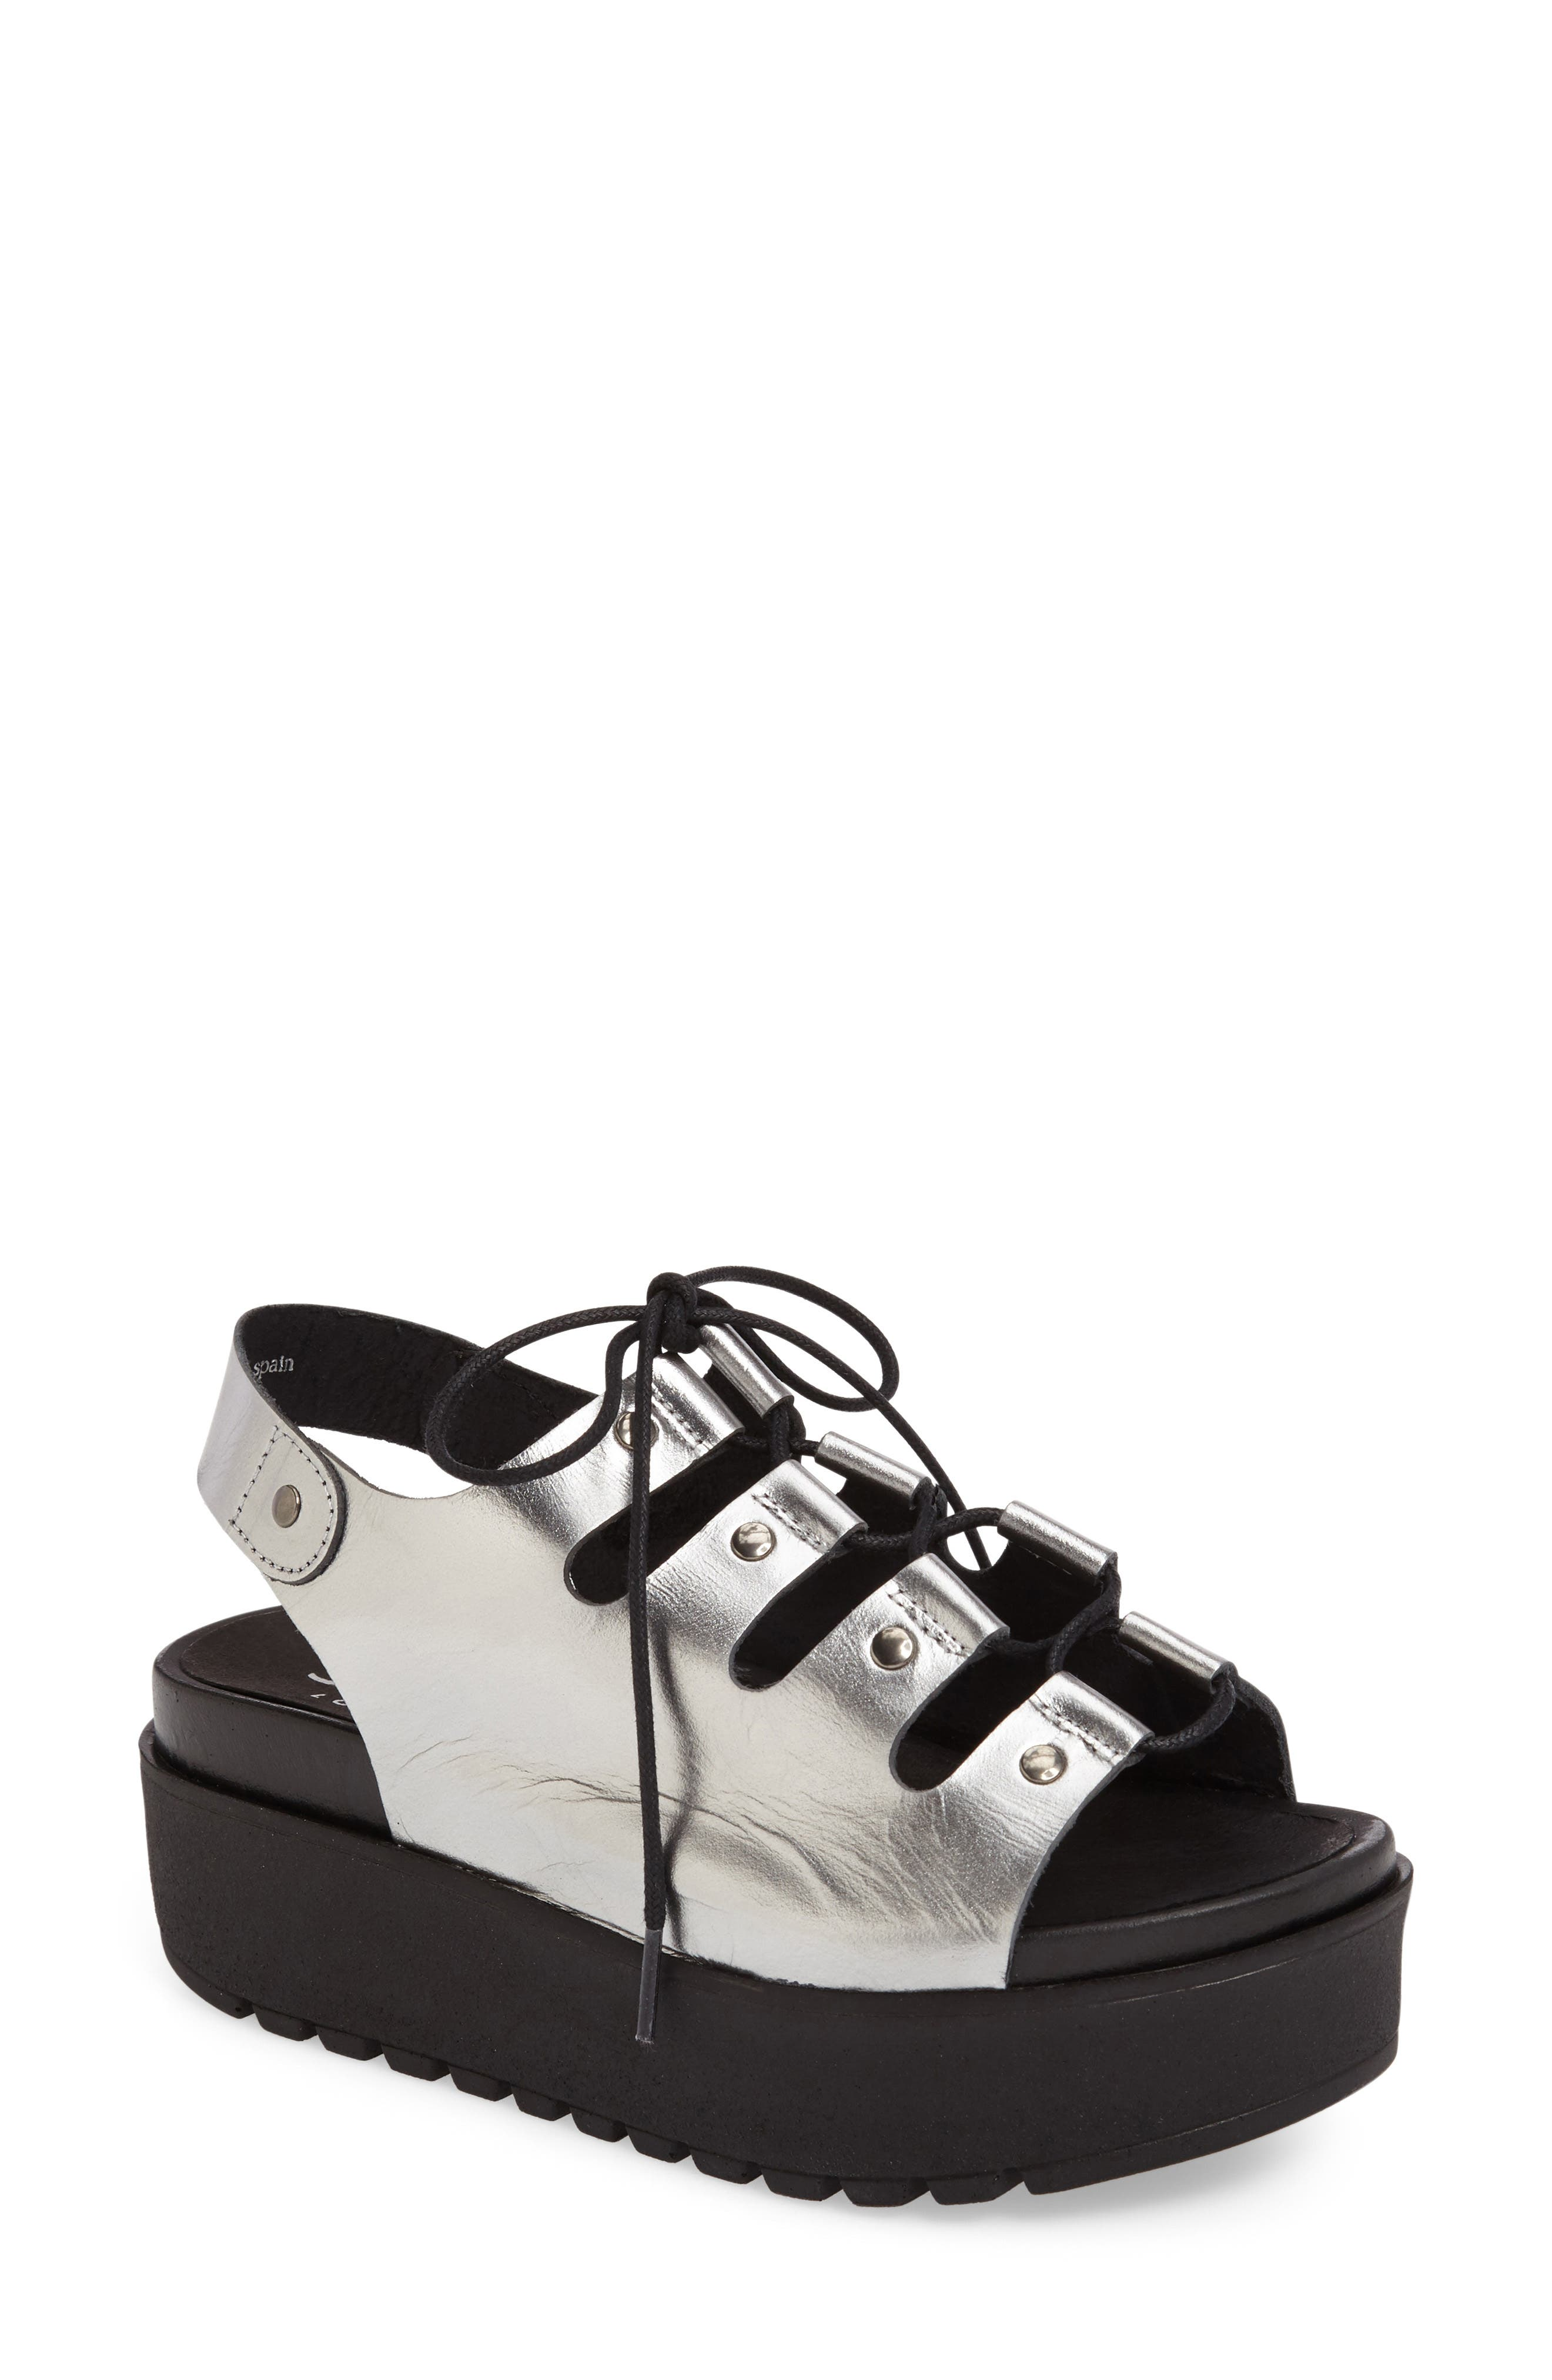 SHELLYS LONDON Kacey Platform Sandal